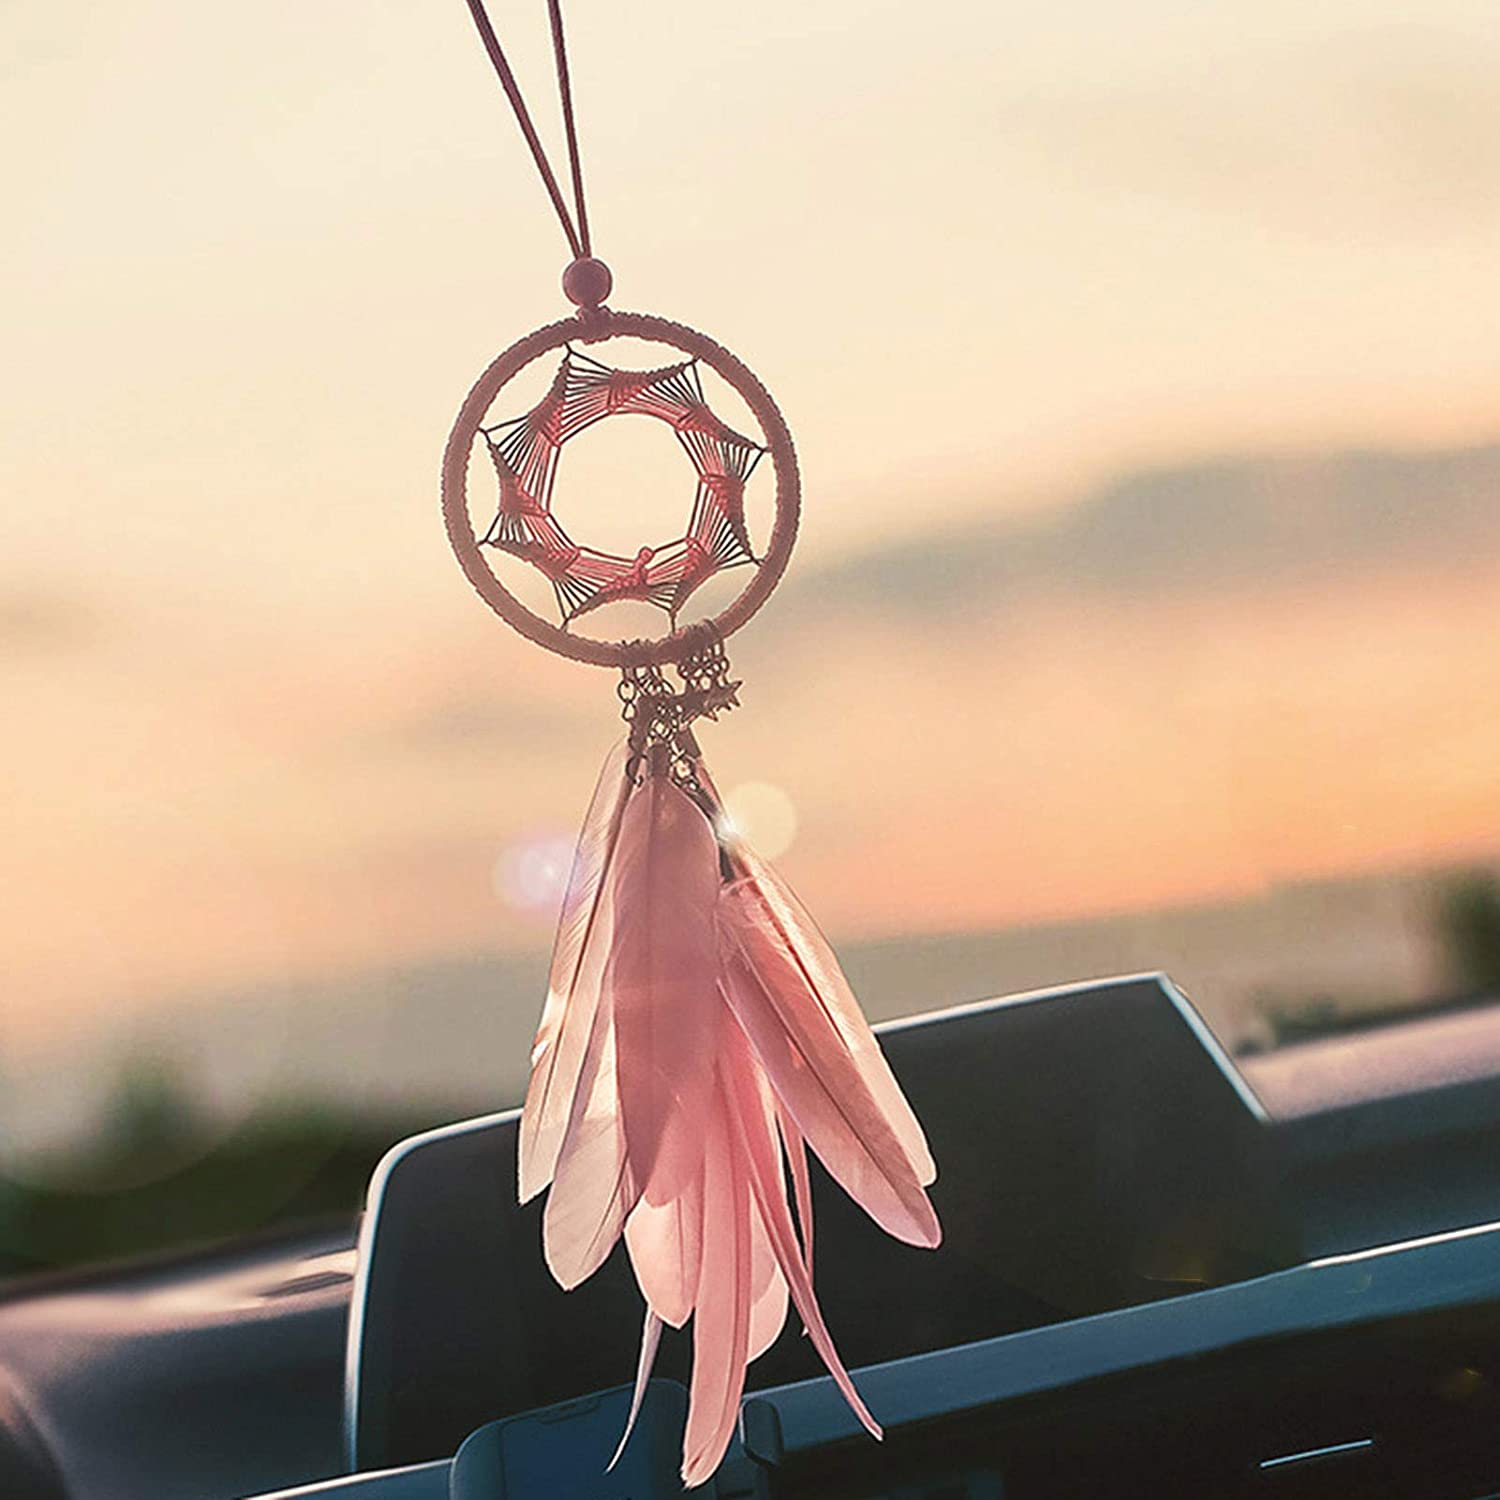 Sweet/&rro17 Handmade Dream Capture Ornament Weaving Car Bedroom Wall and Craft Decoration Blue Star and Feather Creative Feather Net Hanging Accessories